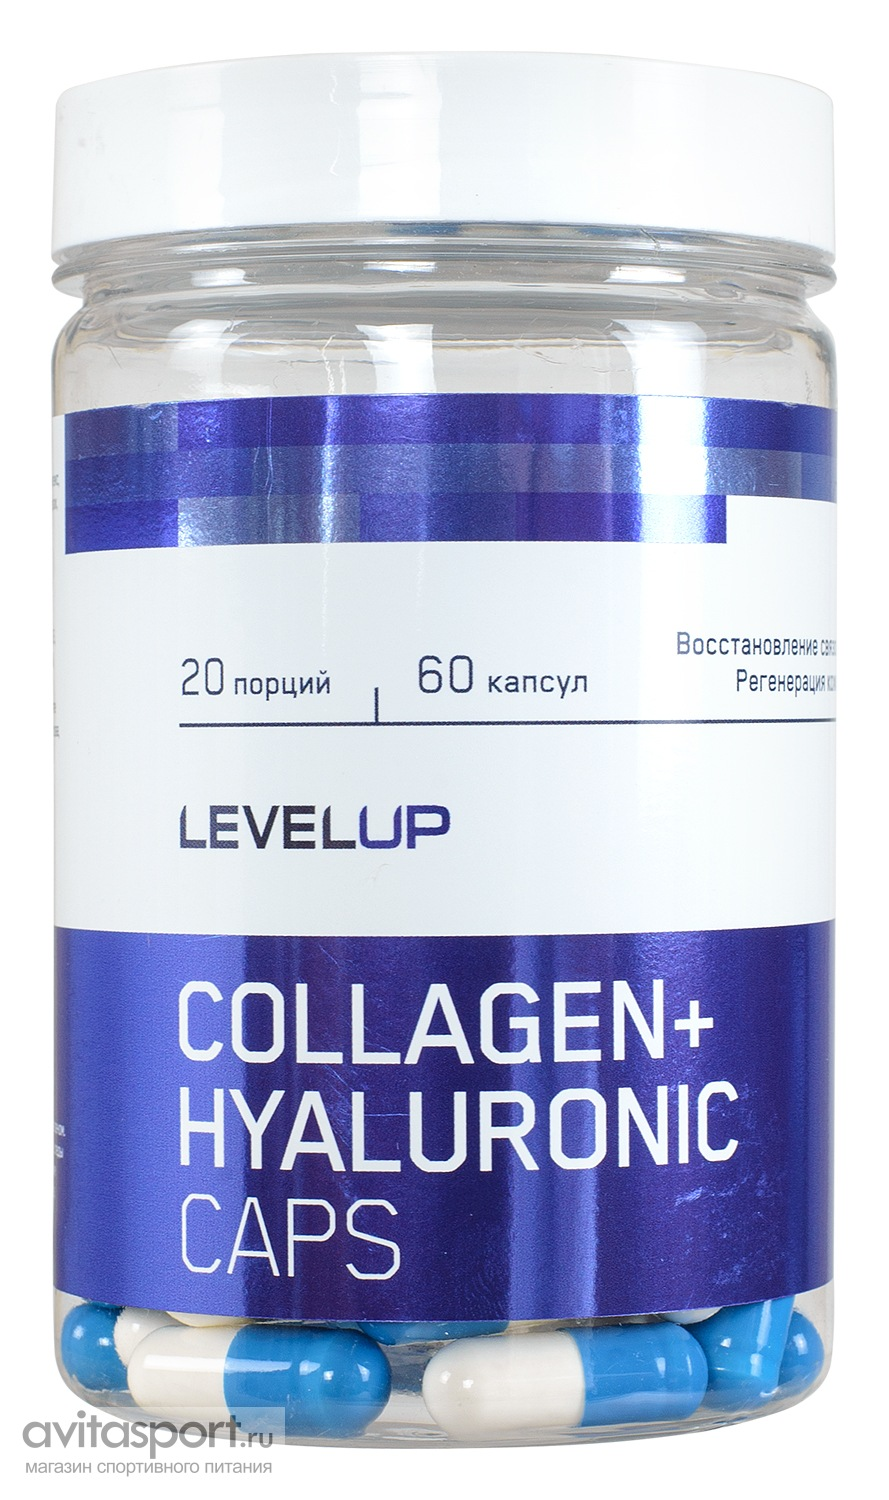 LevelUp Collagen + Hyaluronic Caps 60 капсул